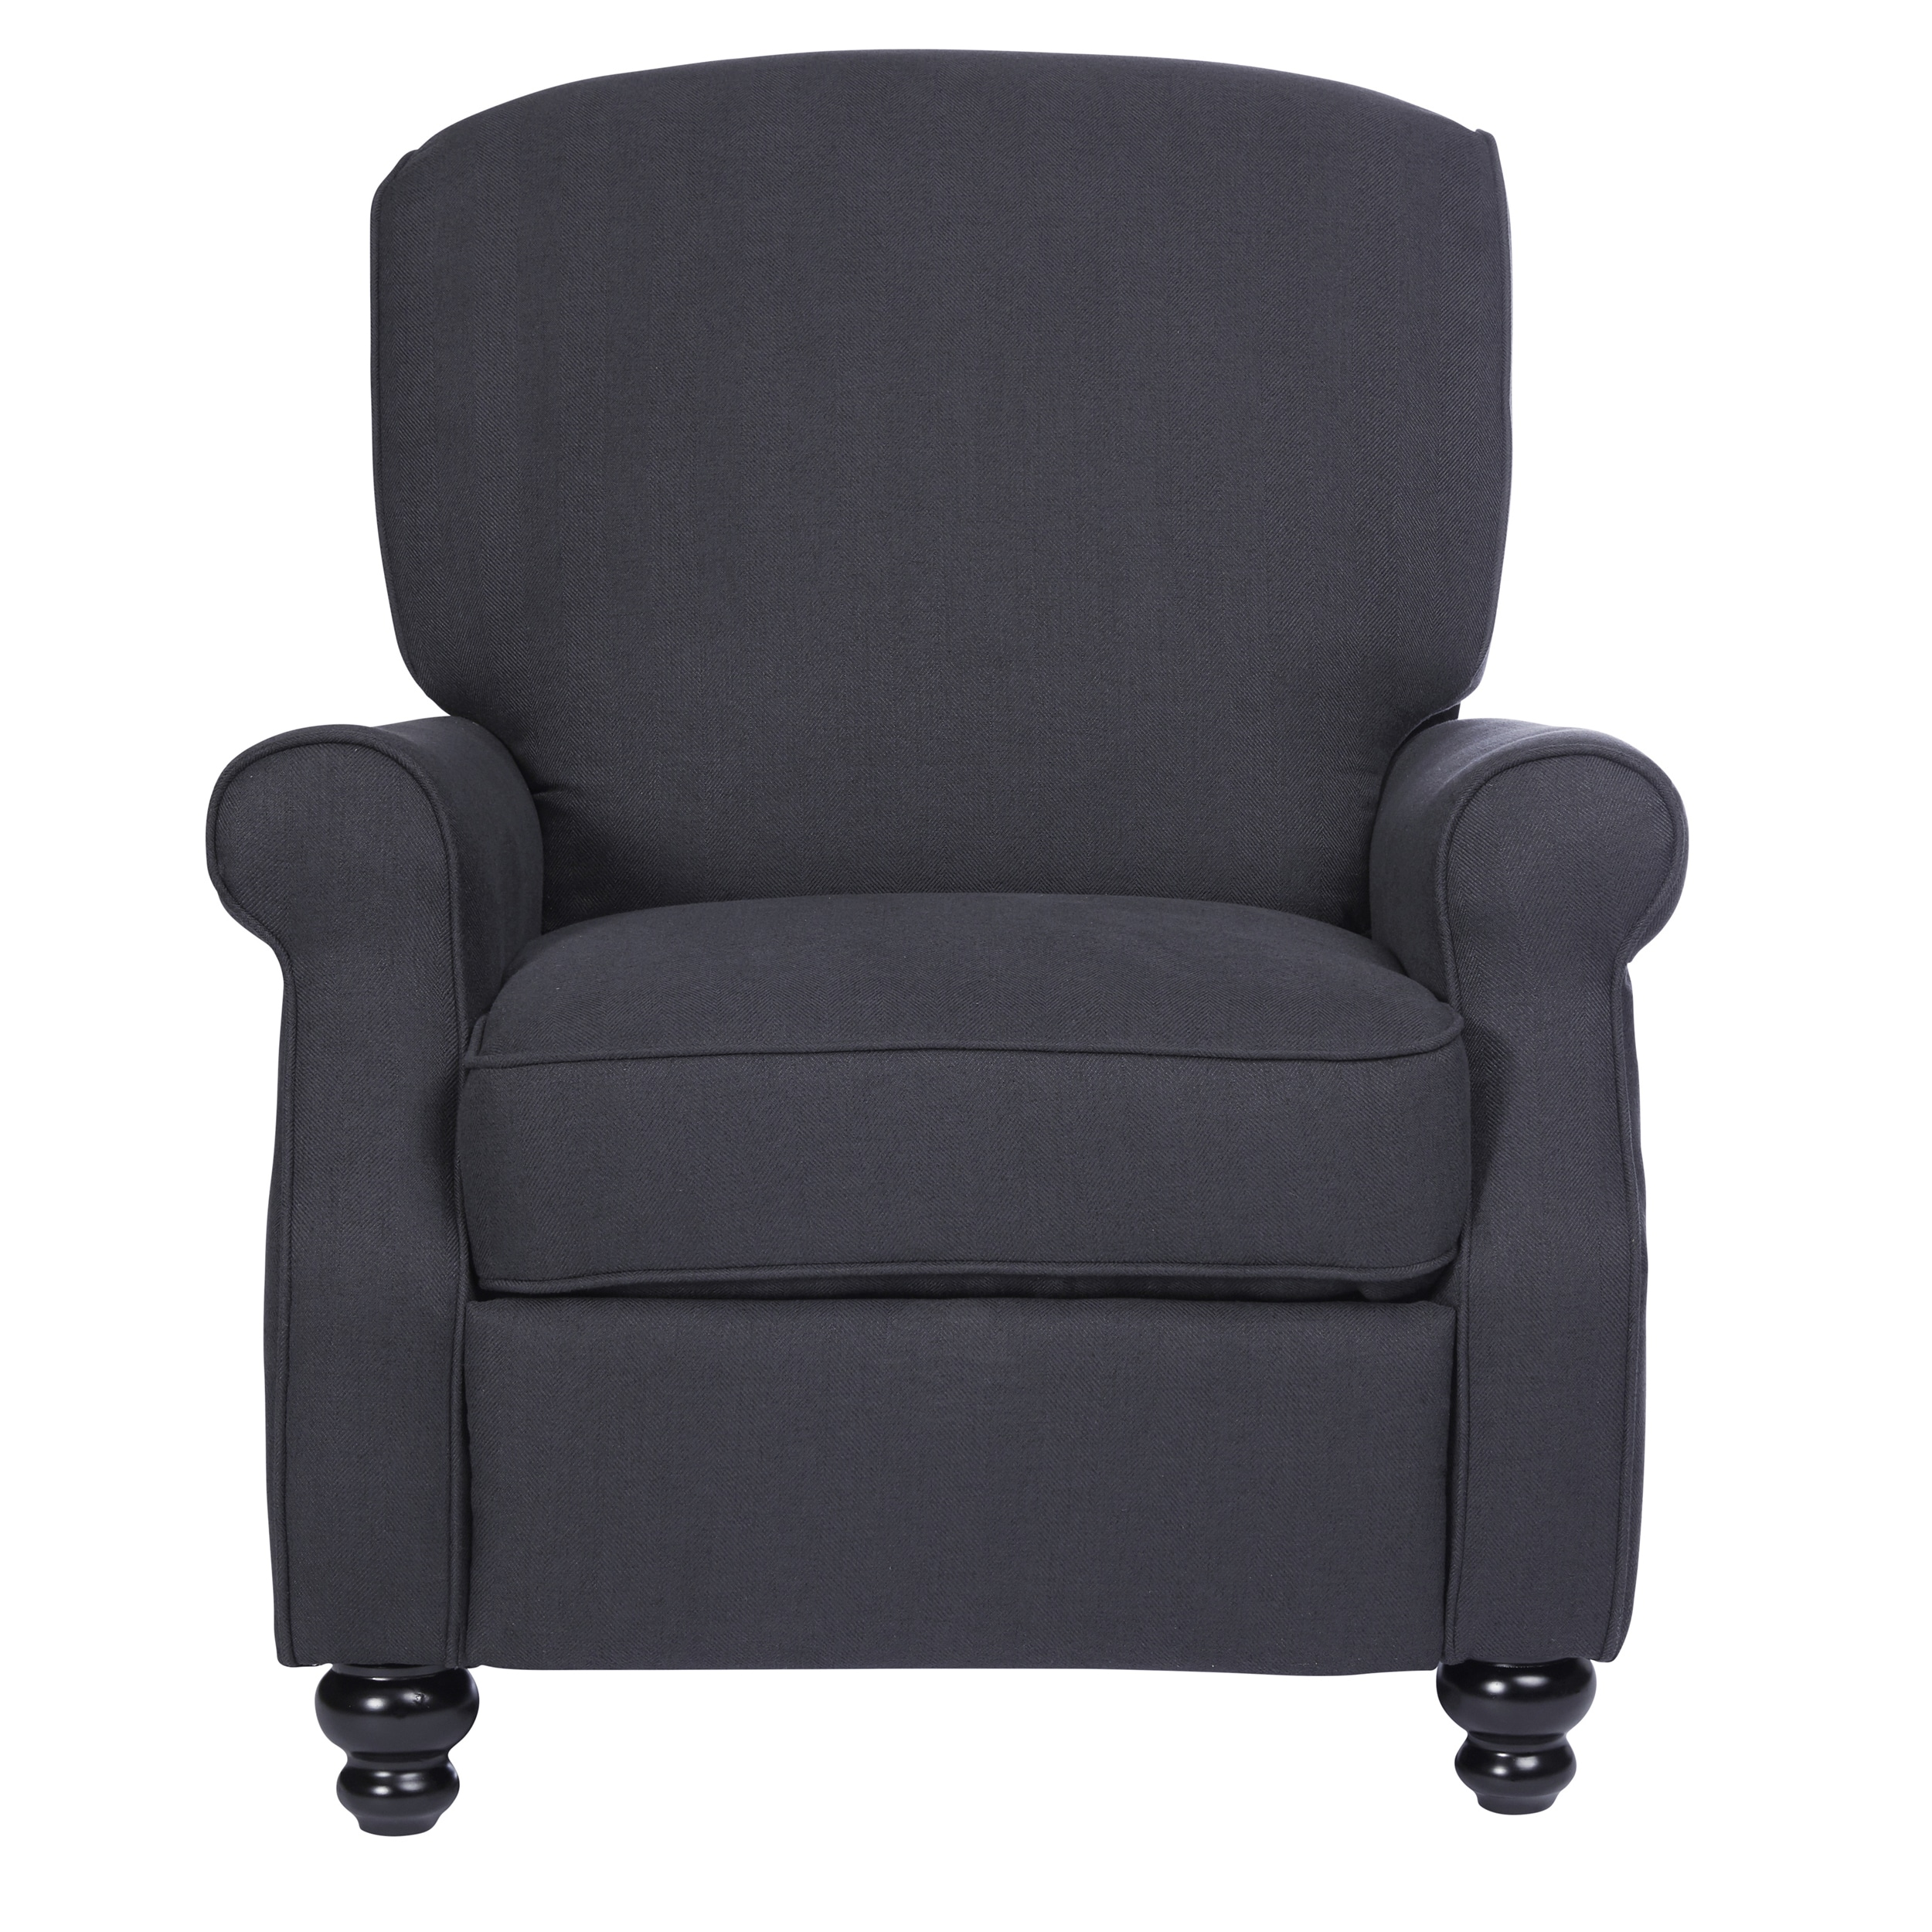 Shop ProLounger Grey Herringbone Push Back Recliner Chair   On Sale   Free  Shipping Today   Overstock.com   18152650